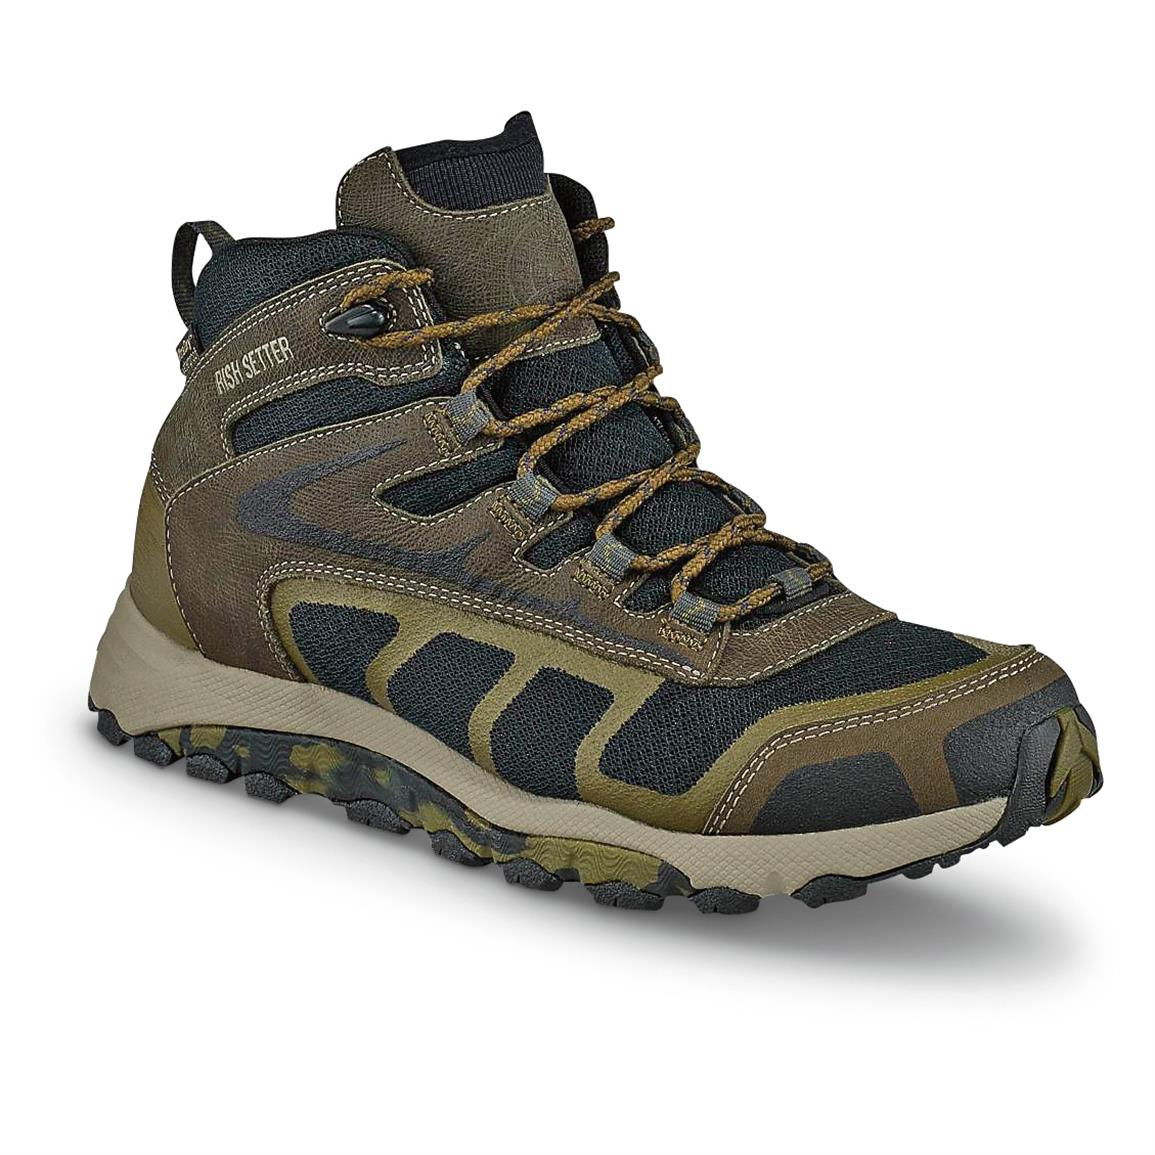 Irish Setter Men's Drifter Trail Waterproof Hiking Boots, Black / Green